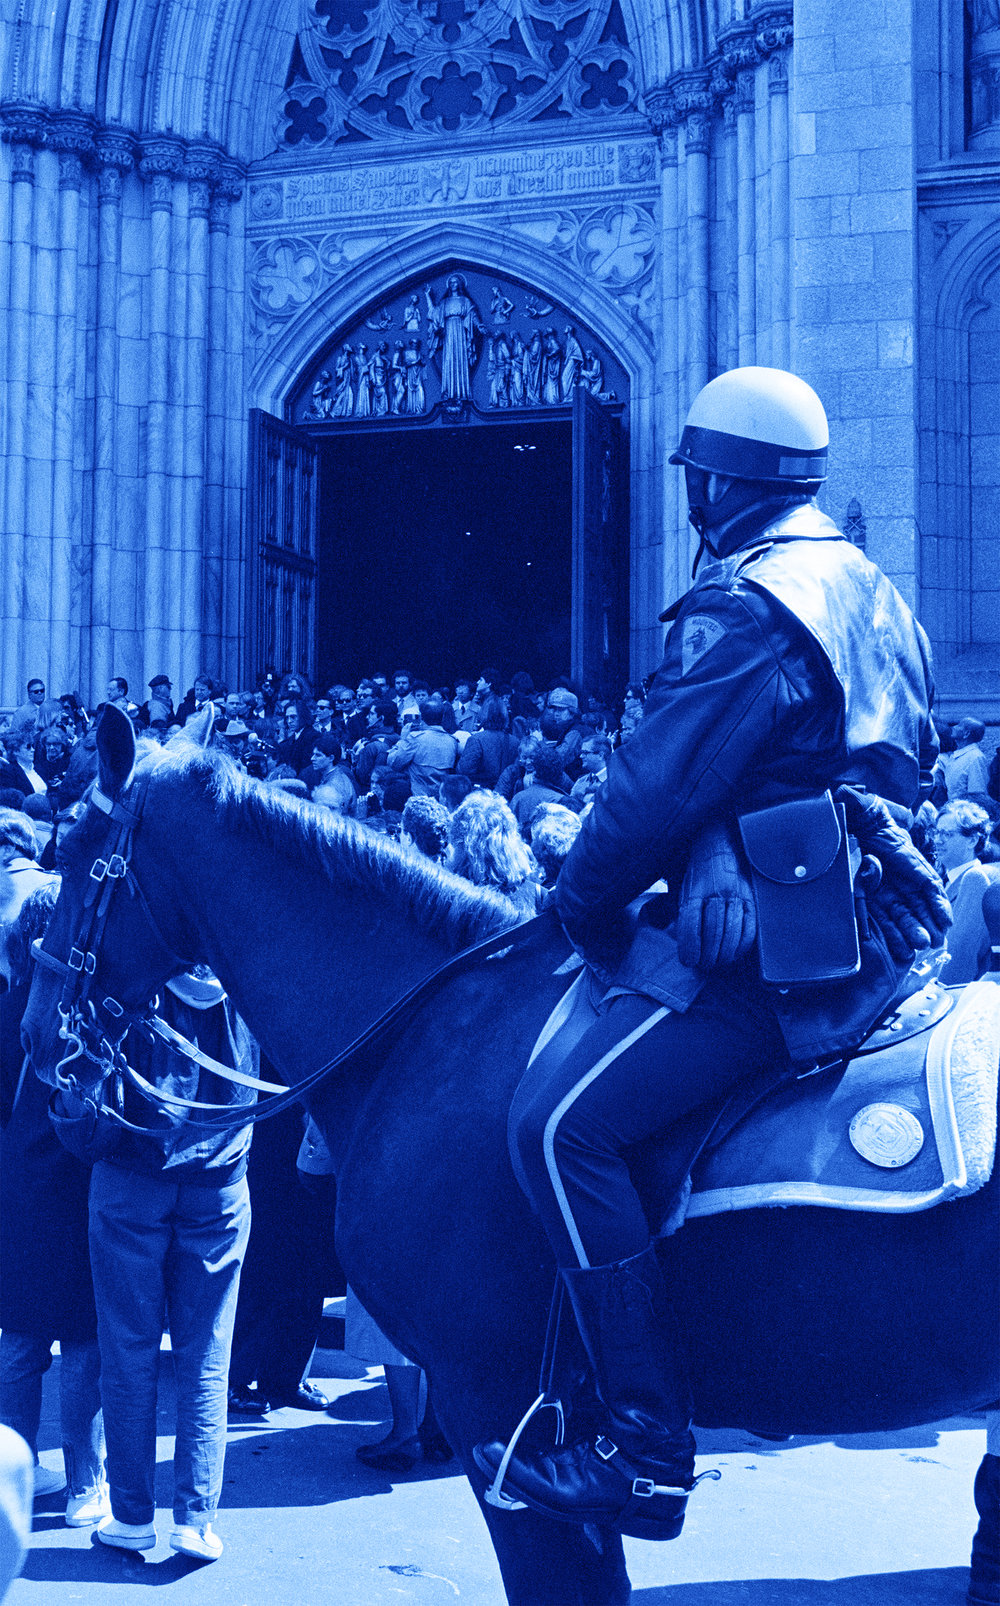 Mounted Patrol at St. Patrick's Cathedral April 1st, 1987